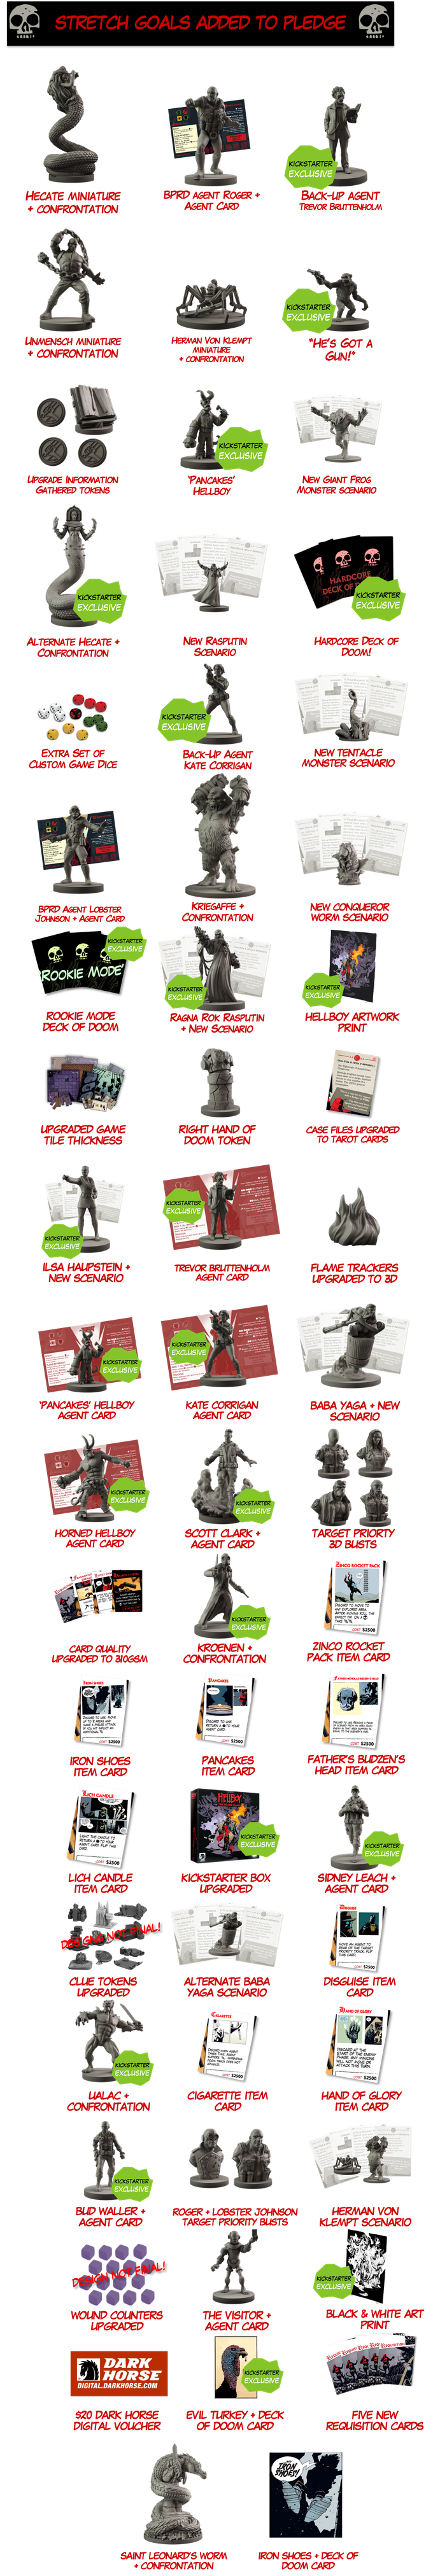 Hellboy: The Board Game by Mantic Games — Kickstarter